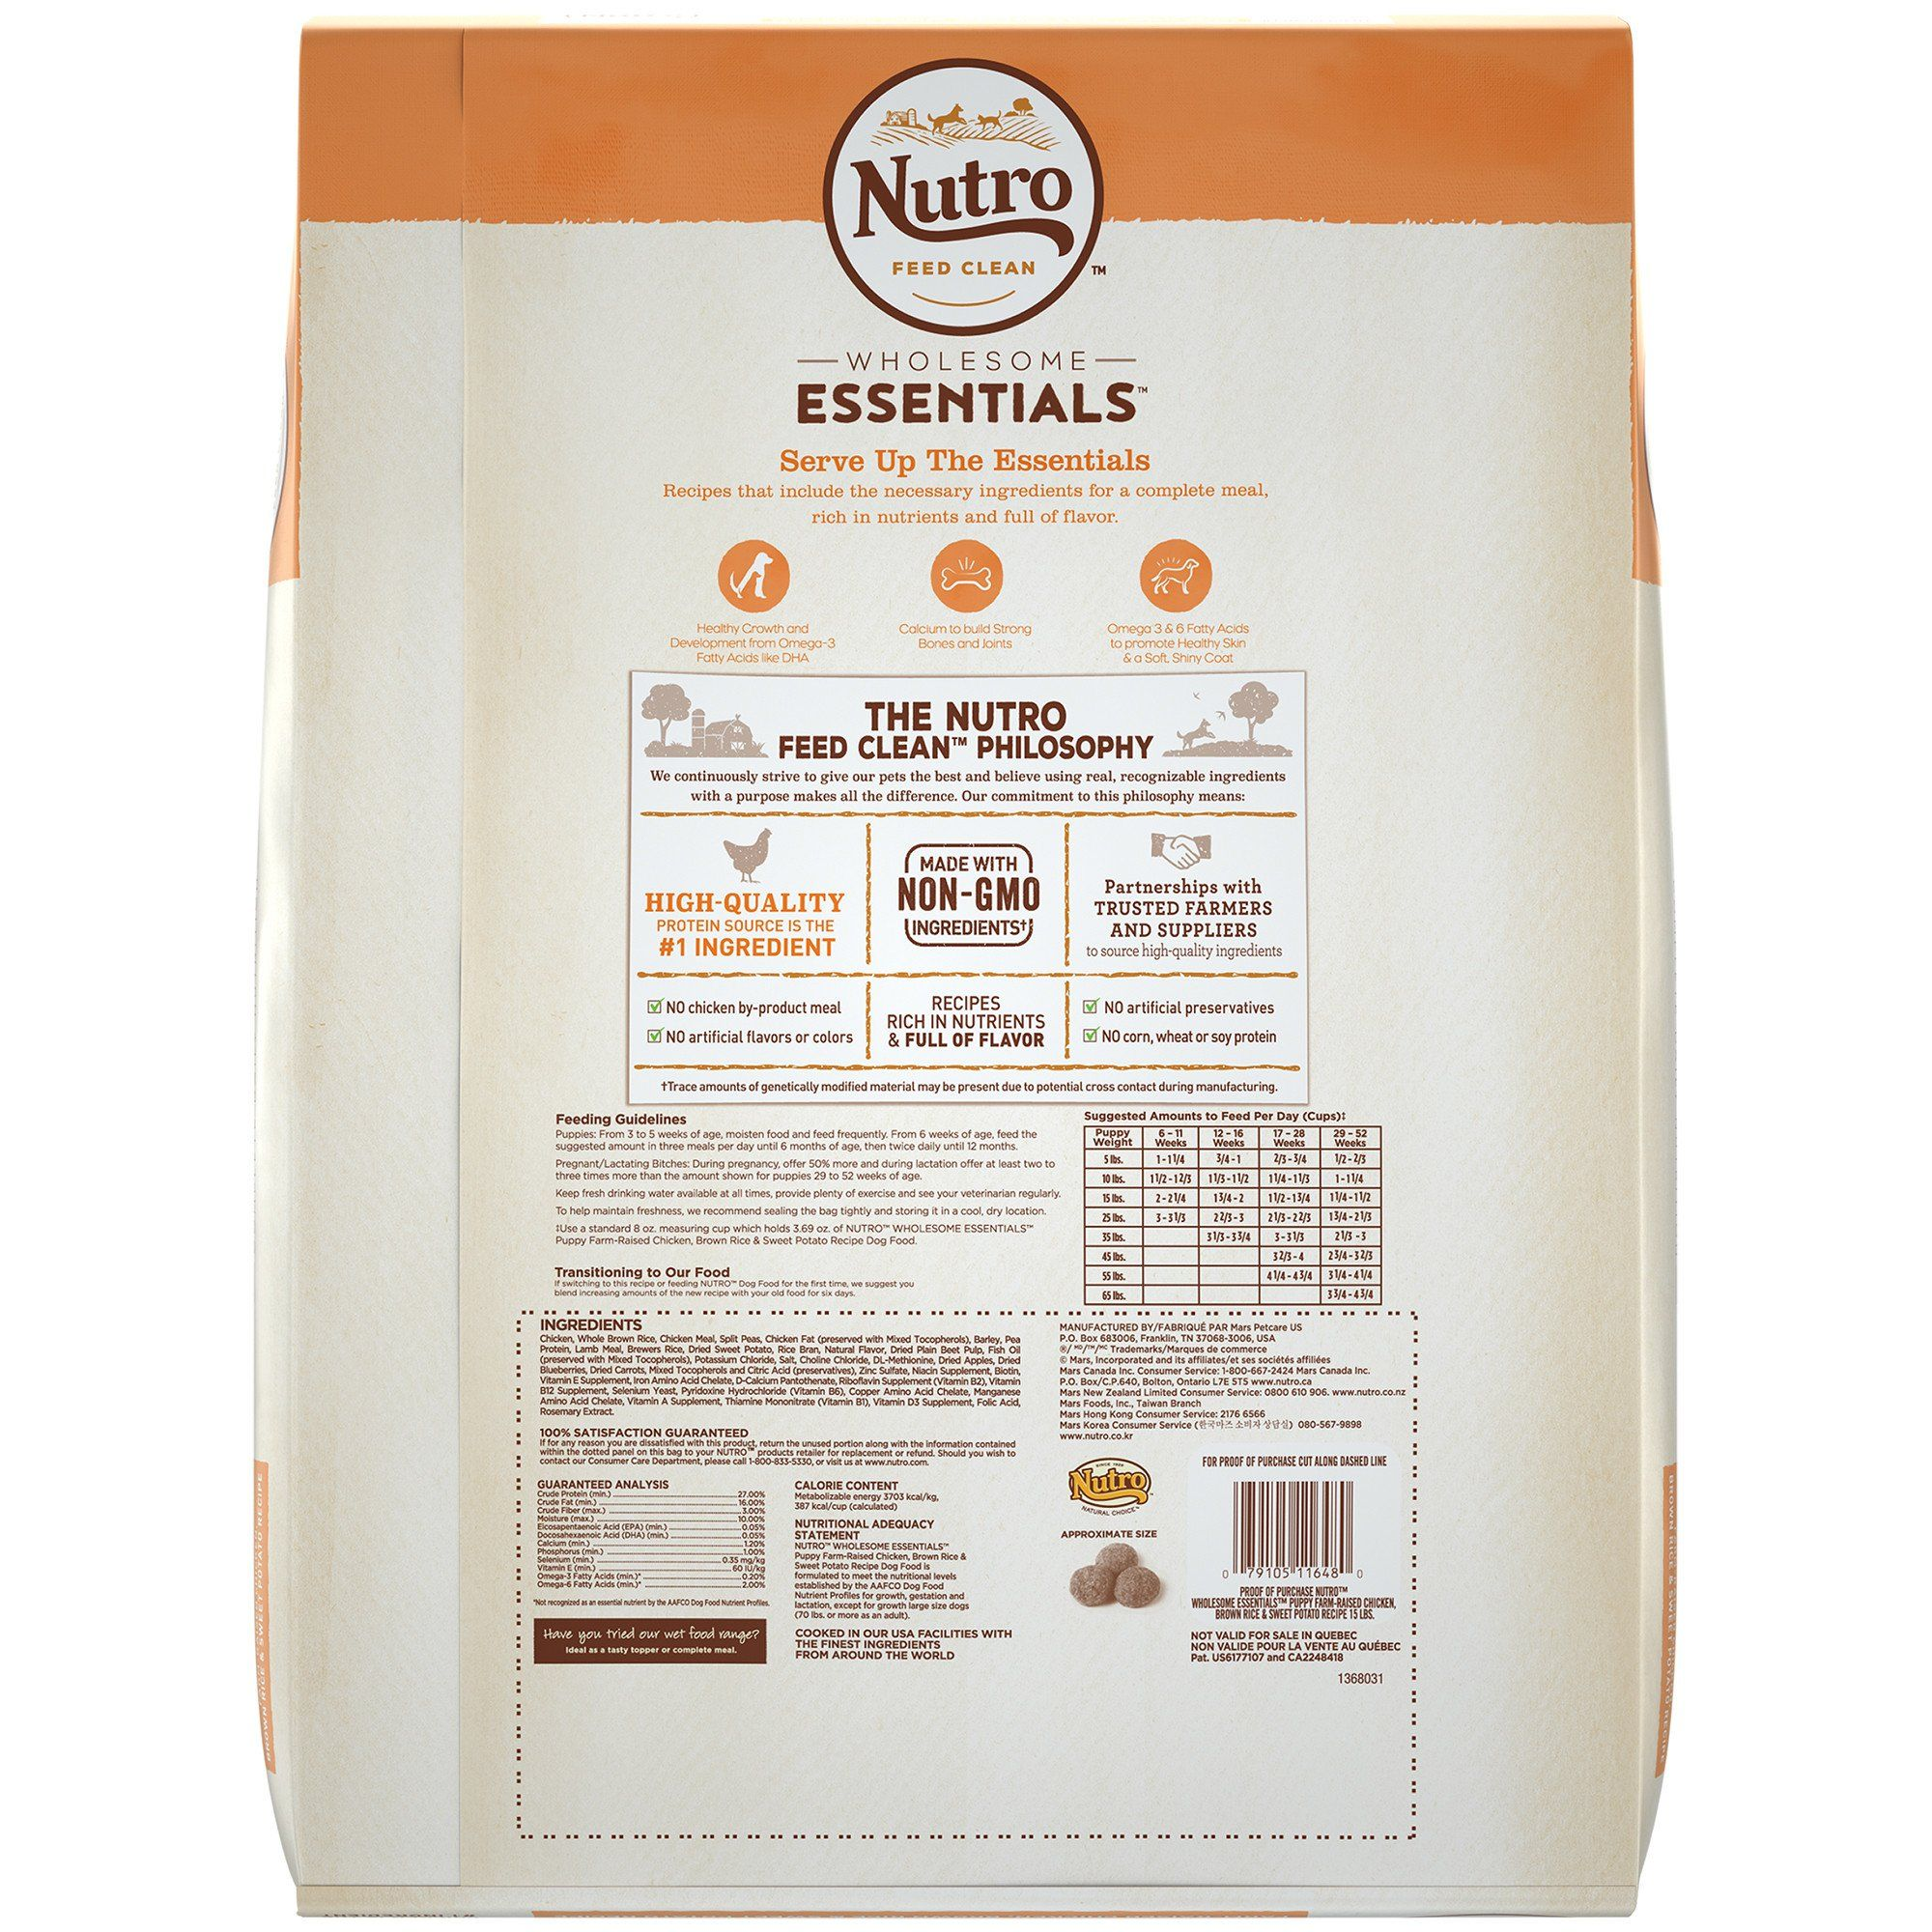 Nutro Wholesome Essentials Puppy Chicken Rice Dry Dog Food 5lb